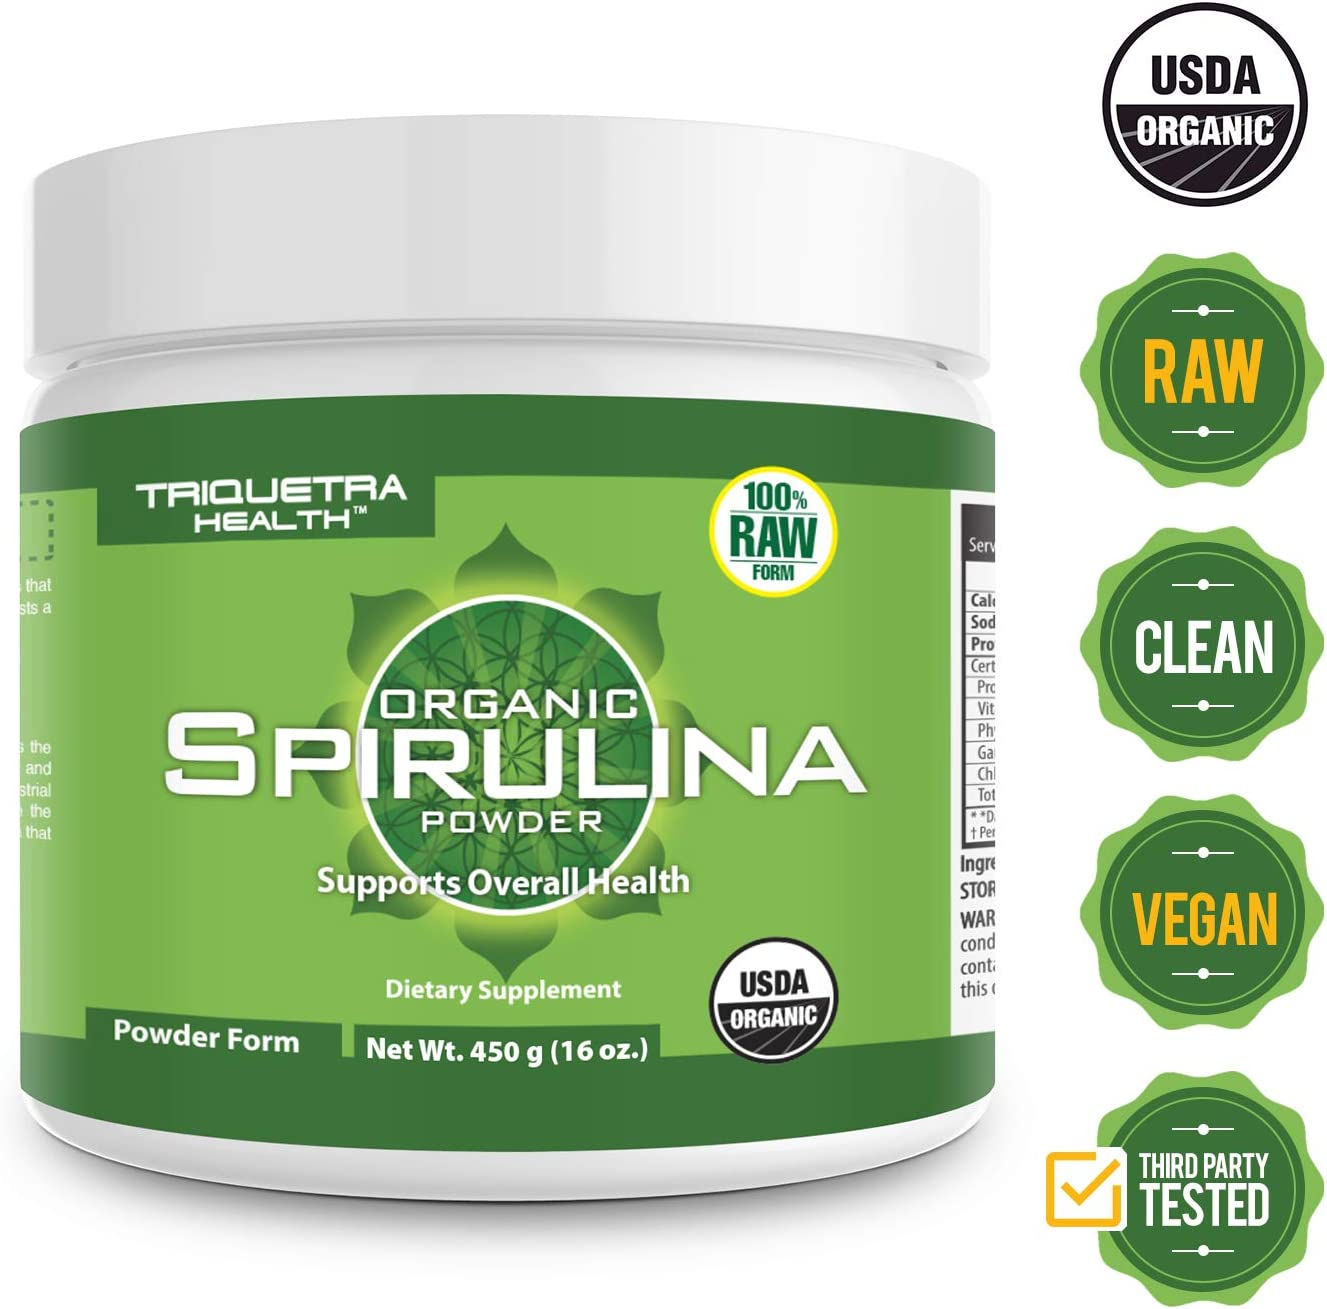 Organic Spirulina Powder 4 Organic Certifications – Certified Organic by USDA, Ecocert, Naturland OCIA – Vegan Farming Process, Non-Irraditated, Max Nutrient Density 16 oz.